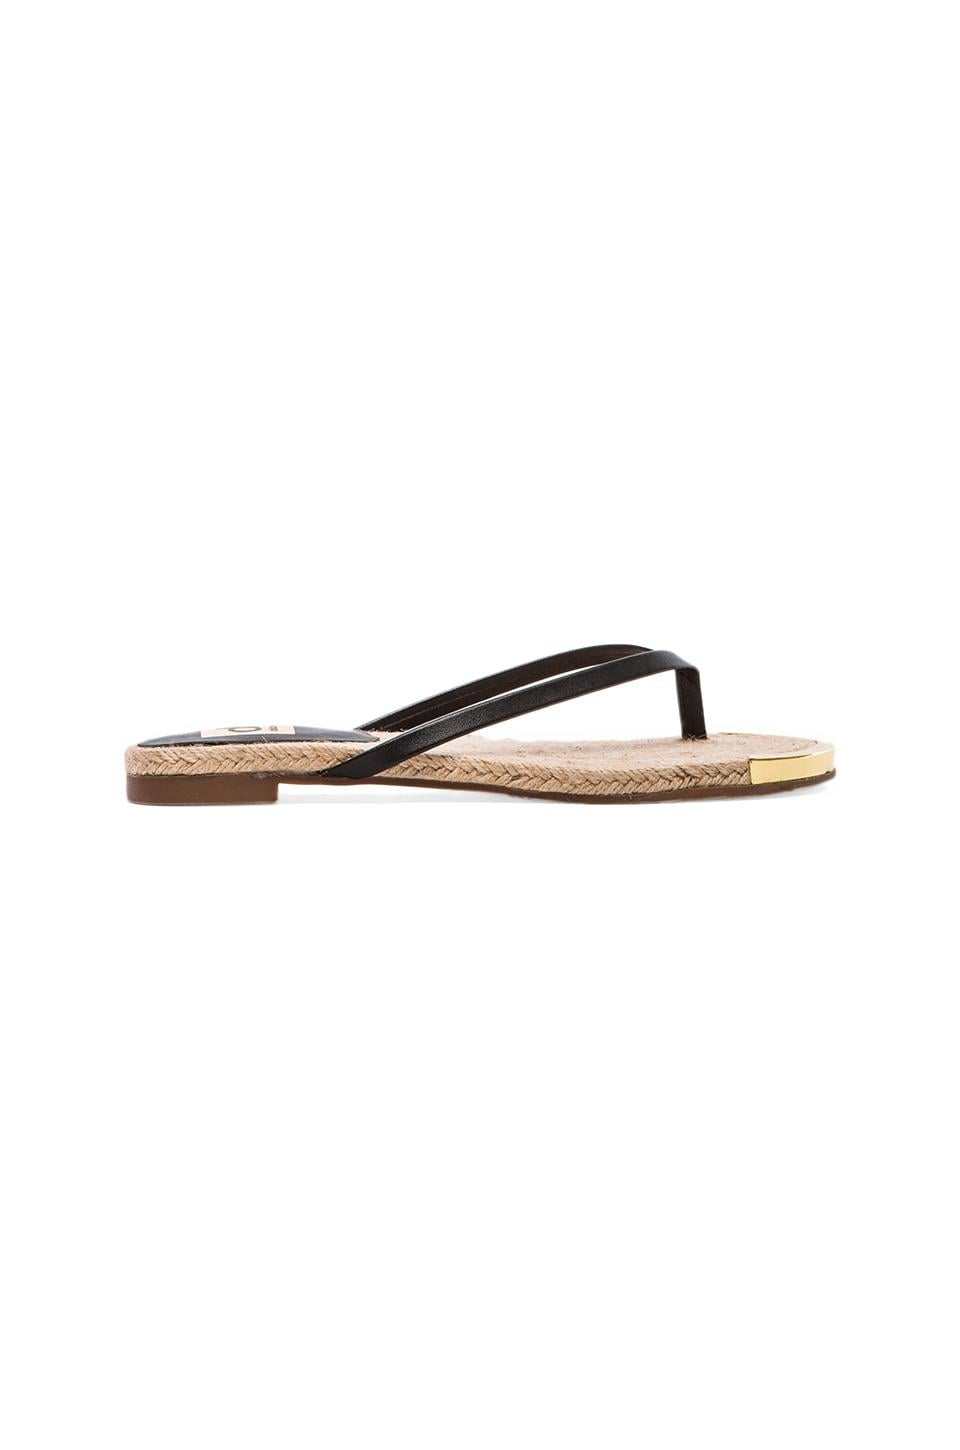 Dolce Vita Dillion Sandal in Black